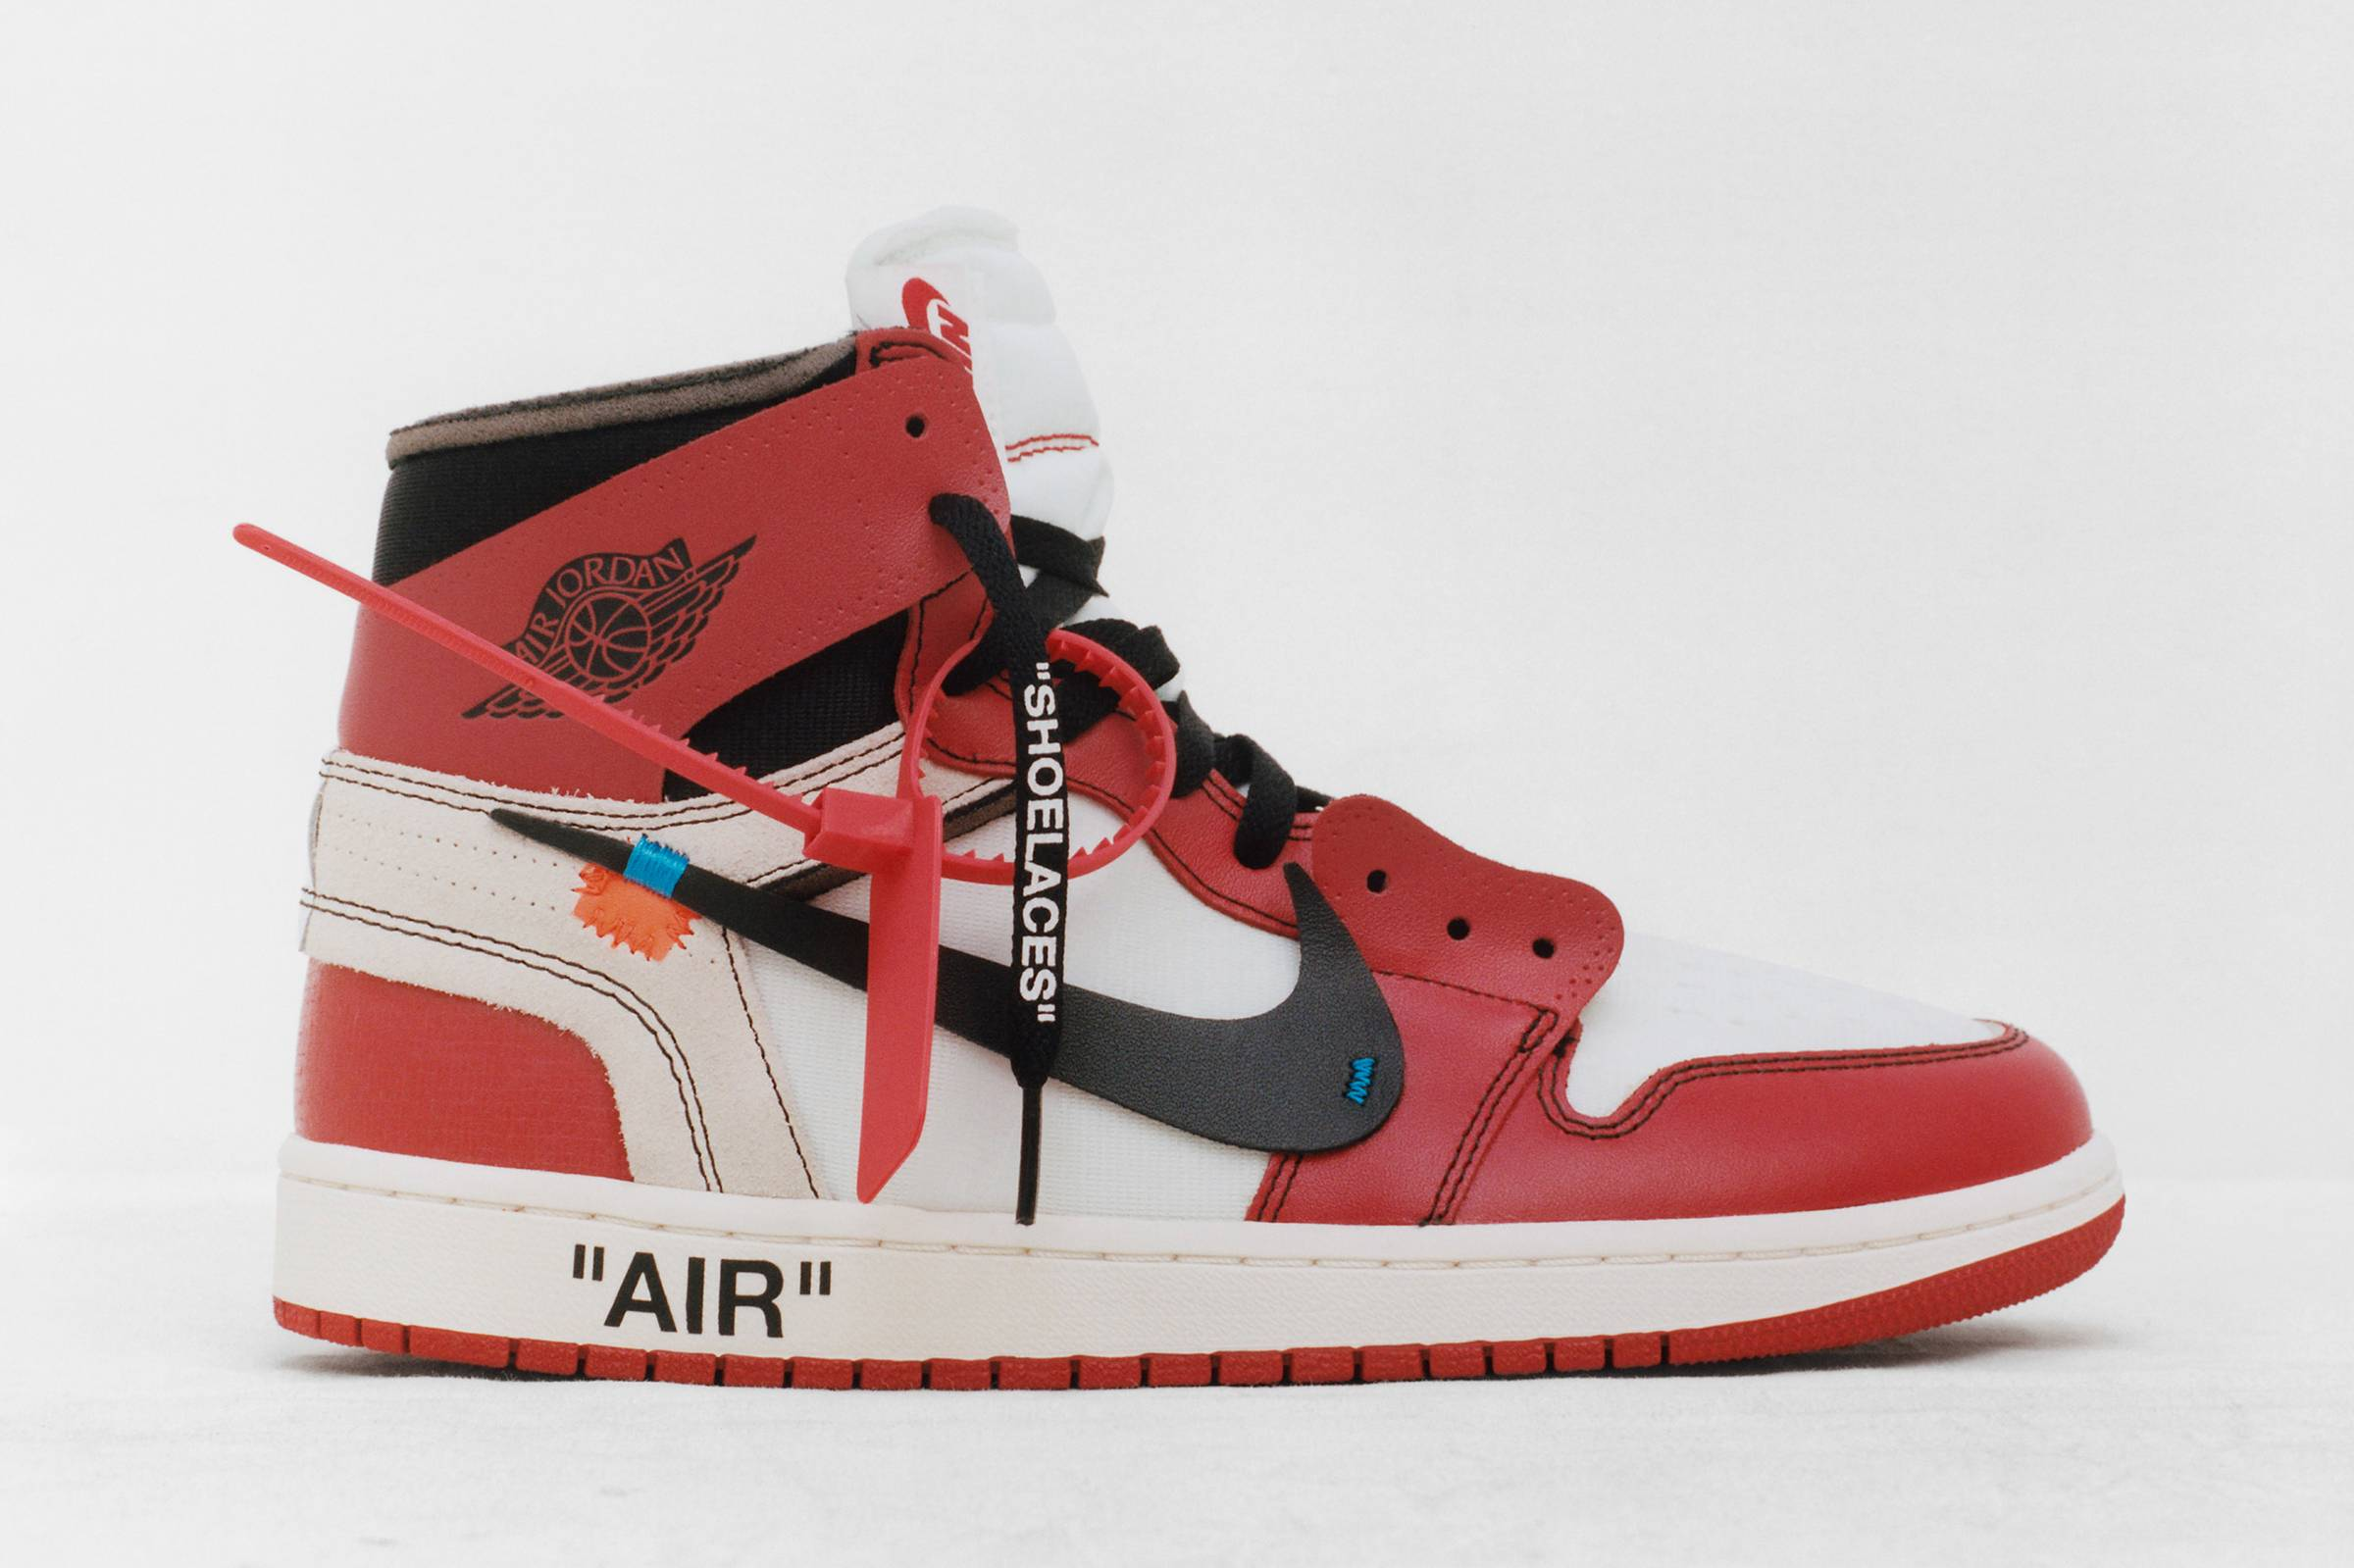 81d6ac74b97c The One That Started It All  A History of the Jordan 1 - Jordan 1 ...